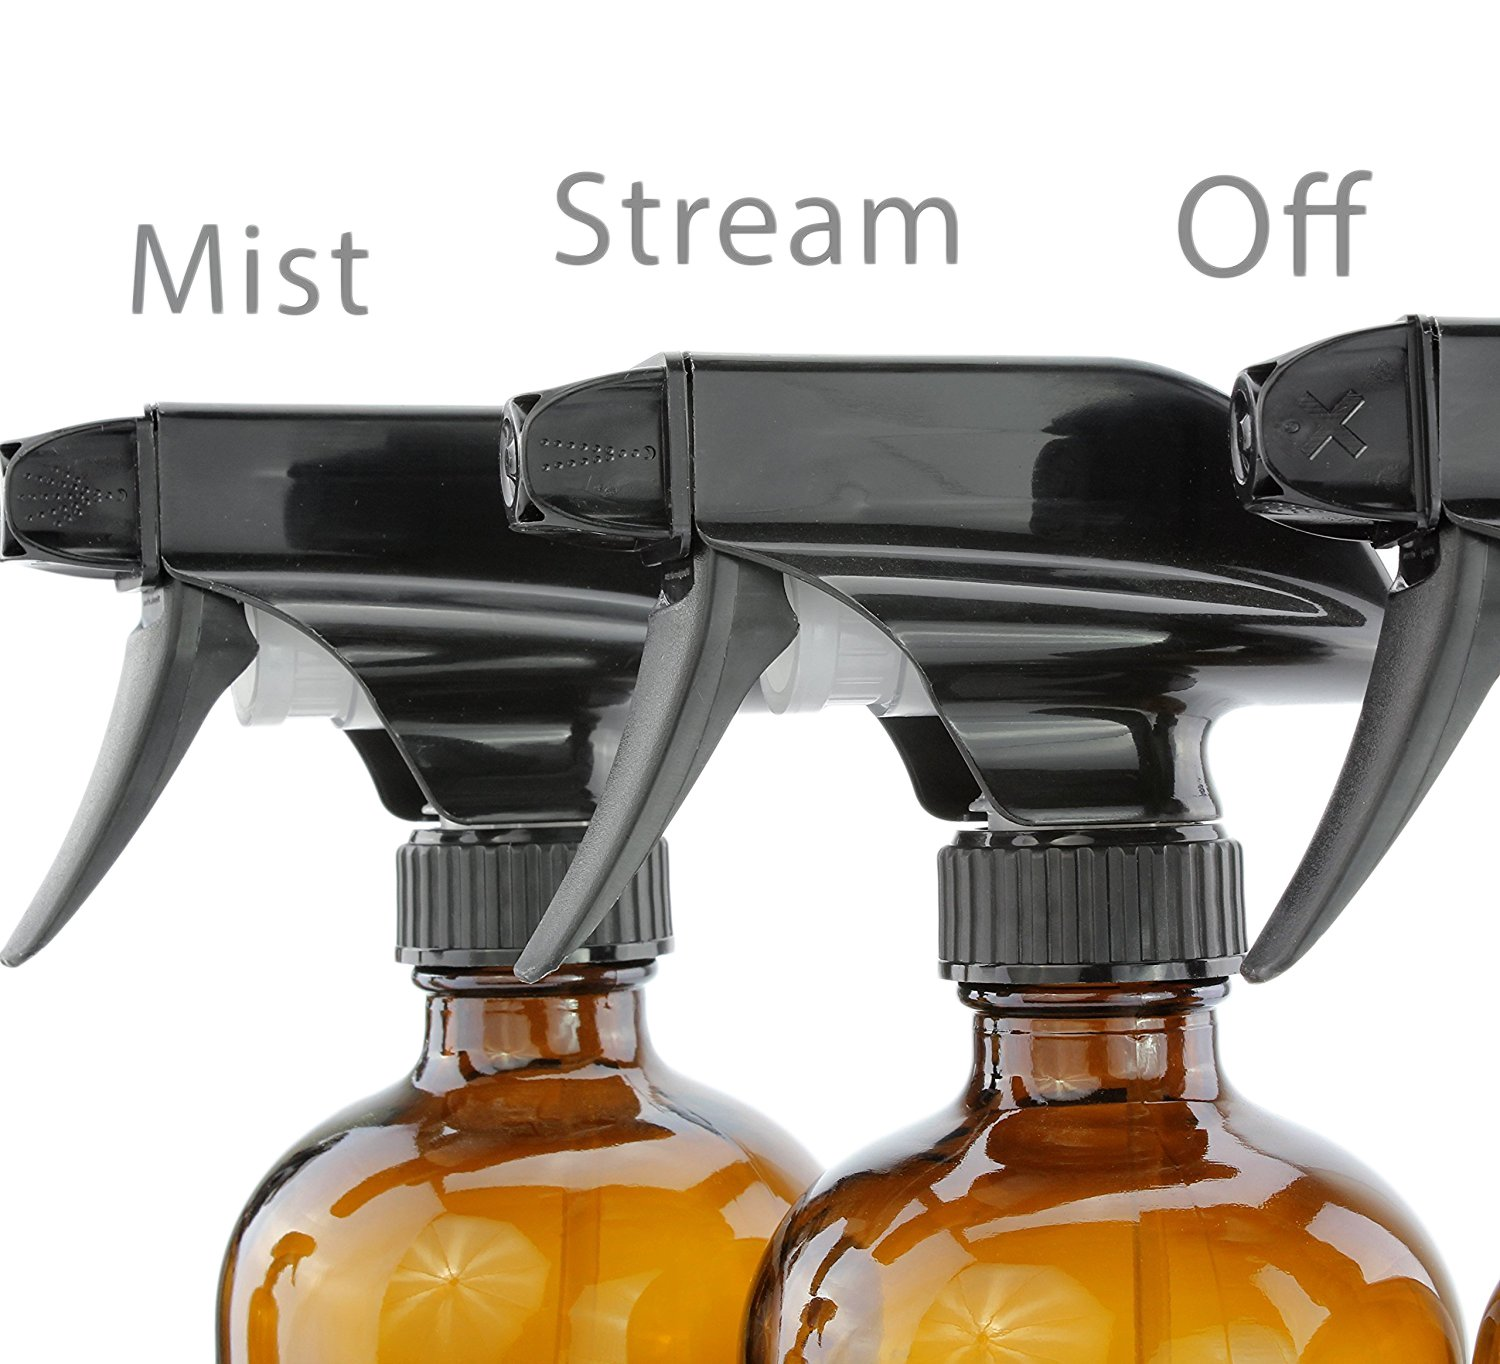 16-Ounce Amber Glass Spray Bottles w/Reusable Chalk Labels (2 Pack), Heavy Duty Mist & Stream 3-Setting Sprayer; Great for Essential Oils by Cornucopia Brands (Image #3)